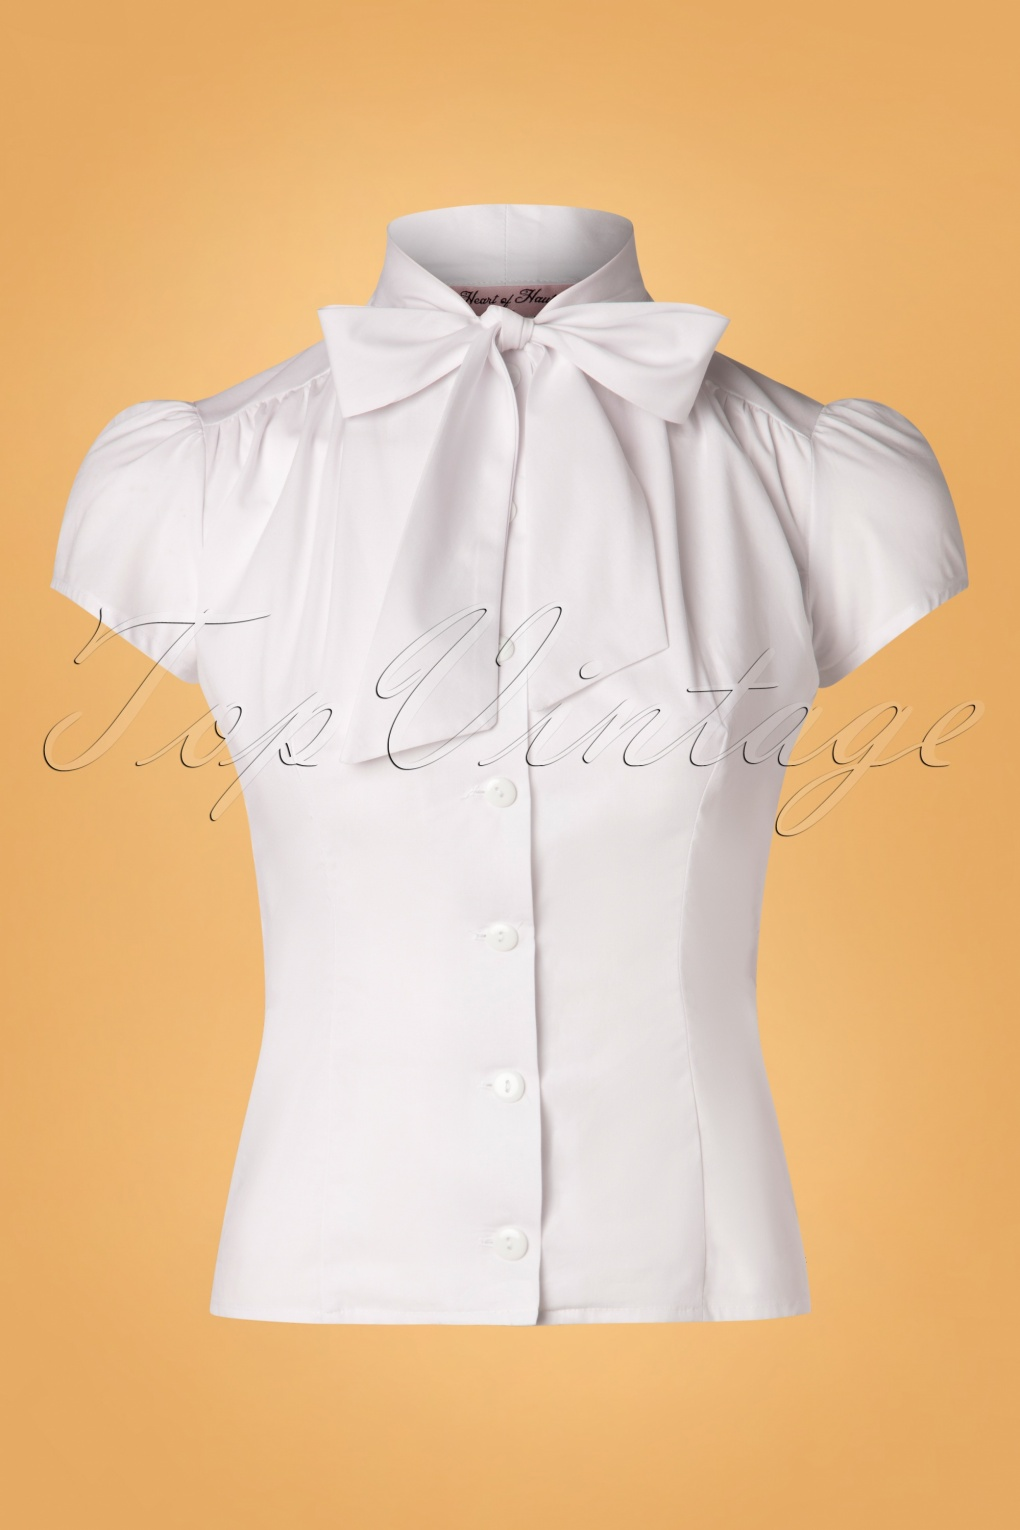 1930s Style Blouses, Shirts, Tops | Vintage Blouses 50s Estelle Blouse in White £71.07 AT vintagedancer.com